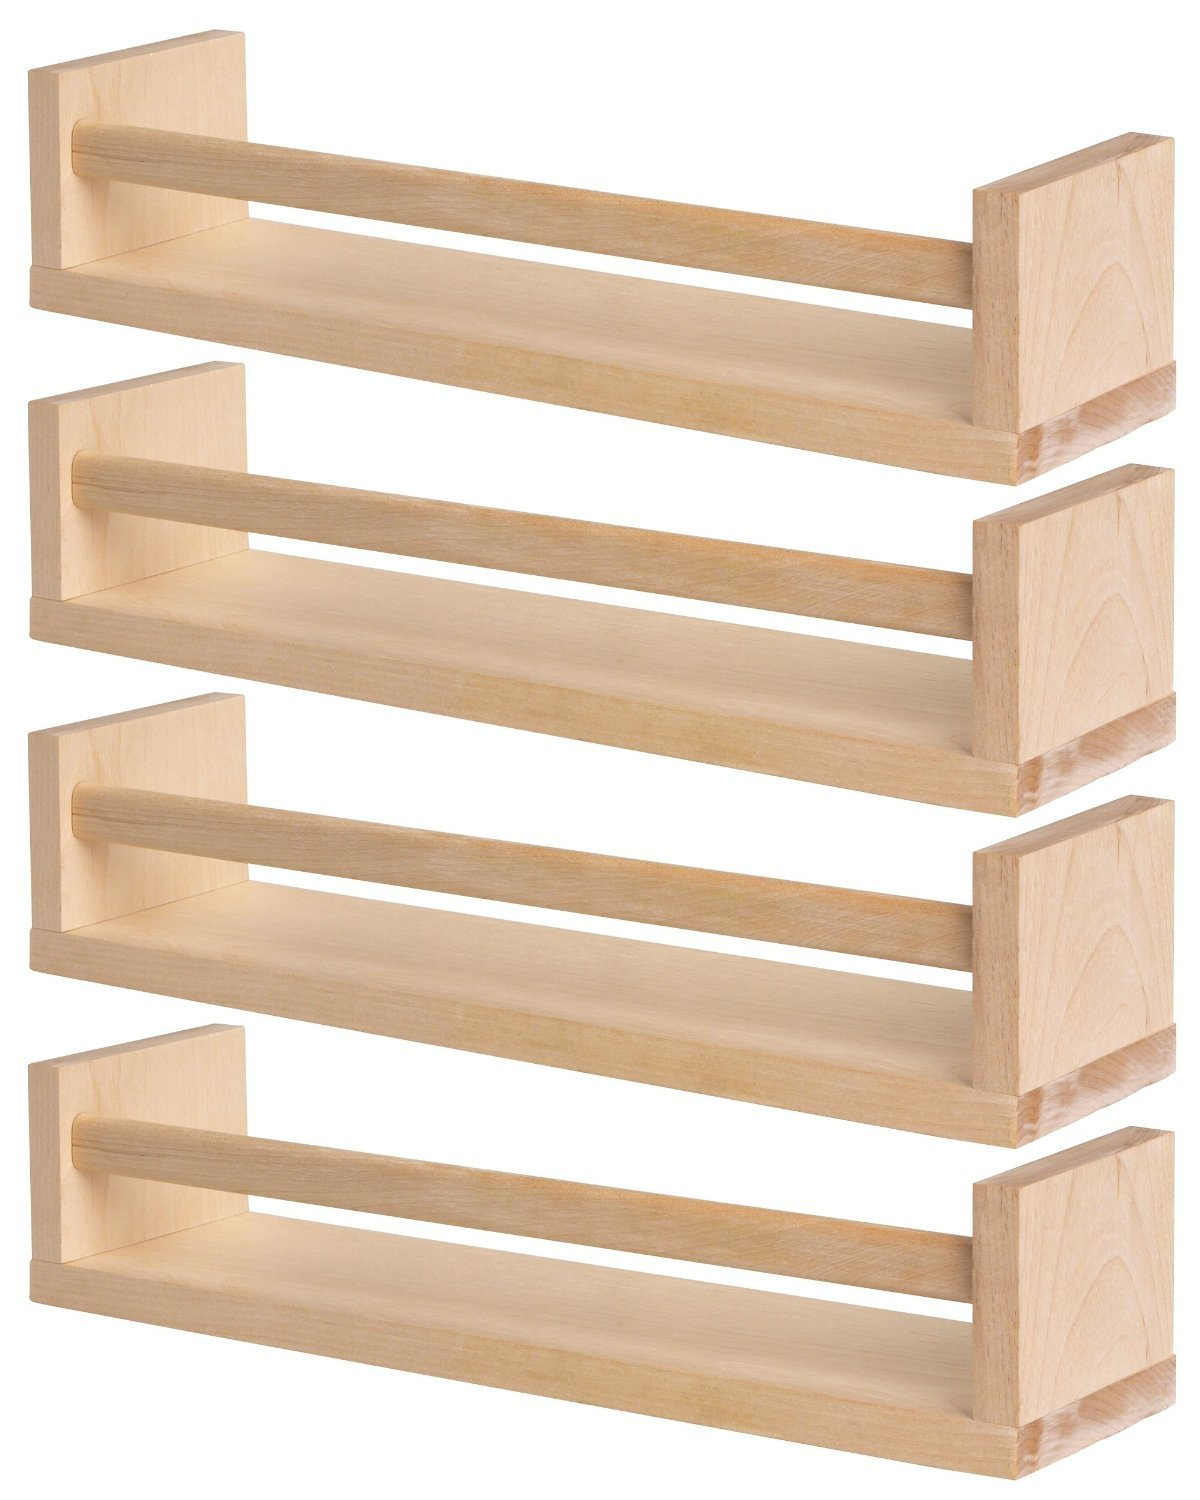 IKEA 4 Wooden Spice Rack - Nursery - Book Holder - Kids Shelf - Kitchen -  Bathroom Accessory - Storage Organizer - Birch Natural Wood - BEKVAM: ...